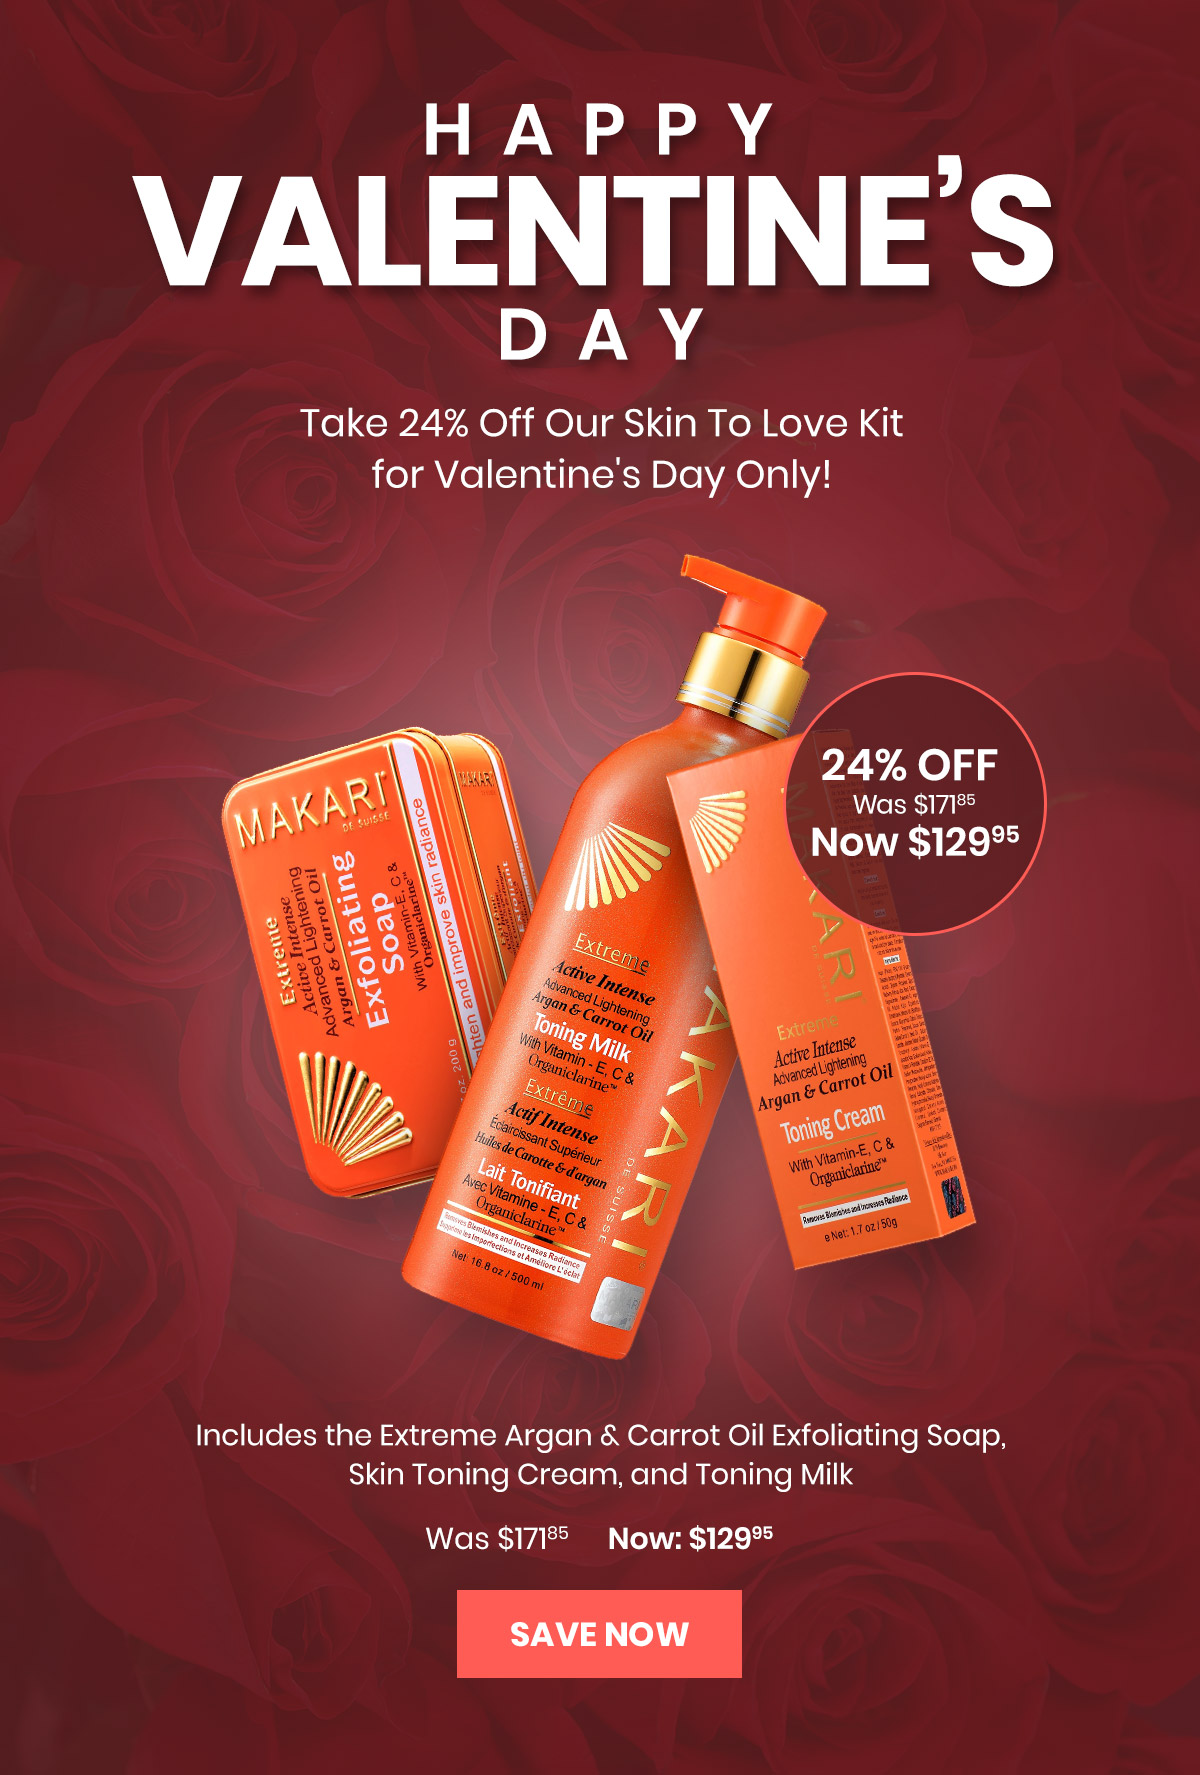 happy valentine's day | Take 24% Off Our Skin To Love Kit for Valentine's Day Only! 24% off Was $171.85 Now $129.95 | Includes the Extreme Argan and Carrot Oil Exfoliating Soap, Skin Toning Cream, and Toning Milk Was $171.85 Now: $129.95 | Save now